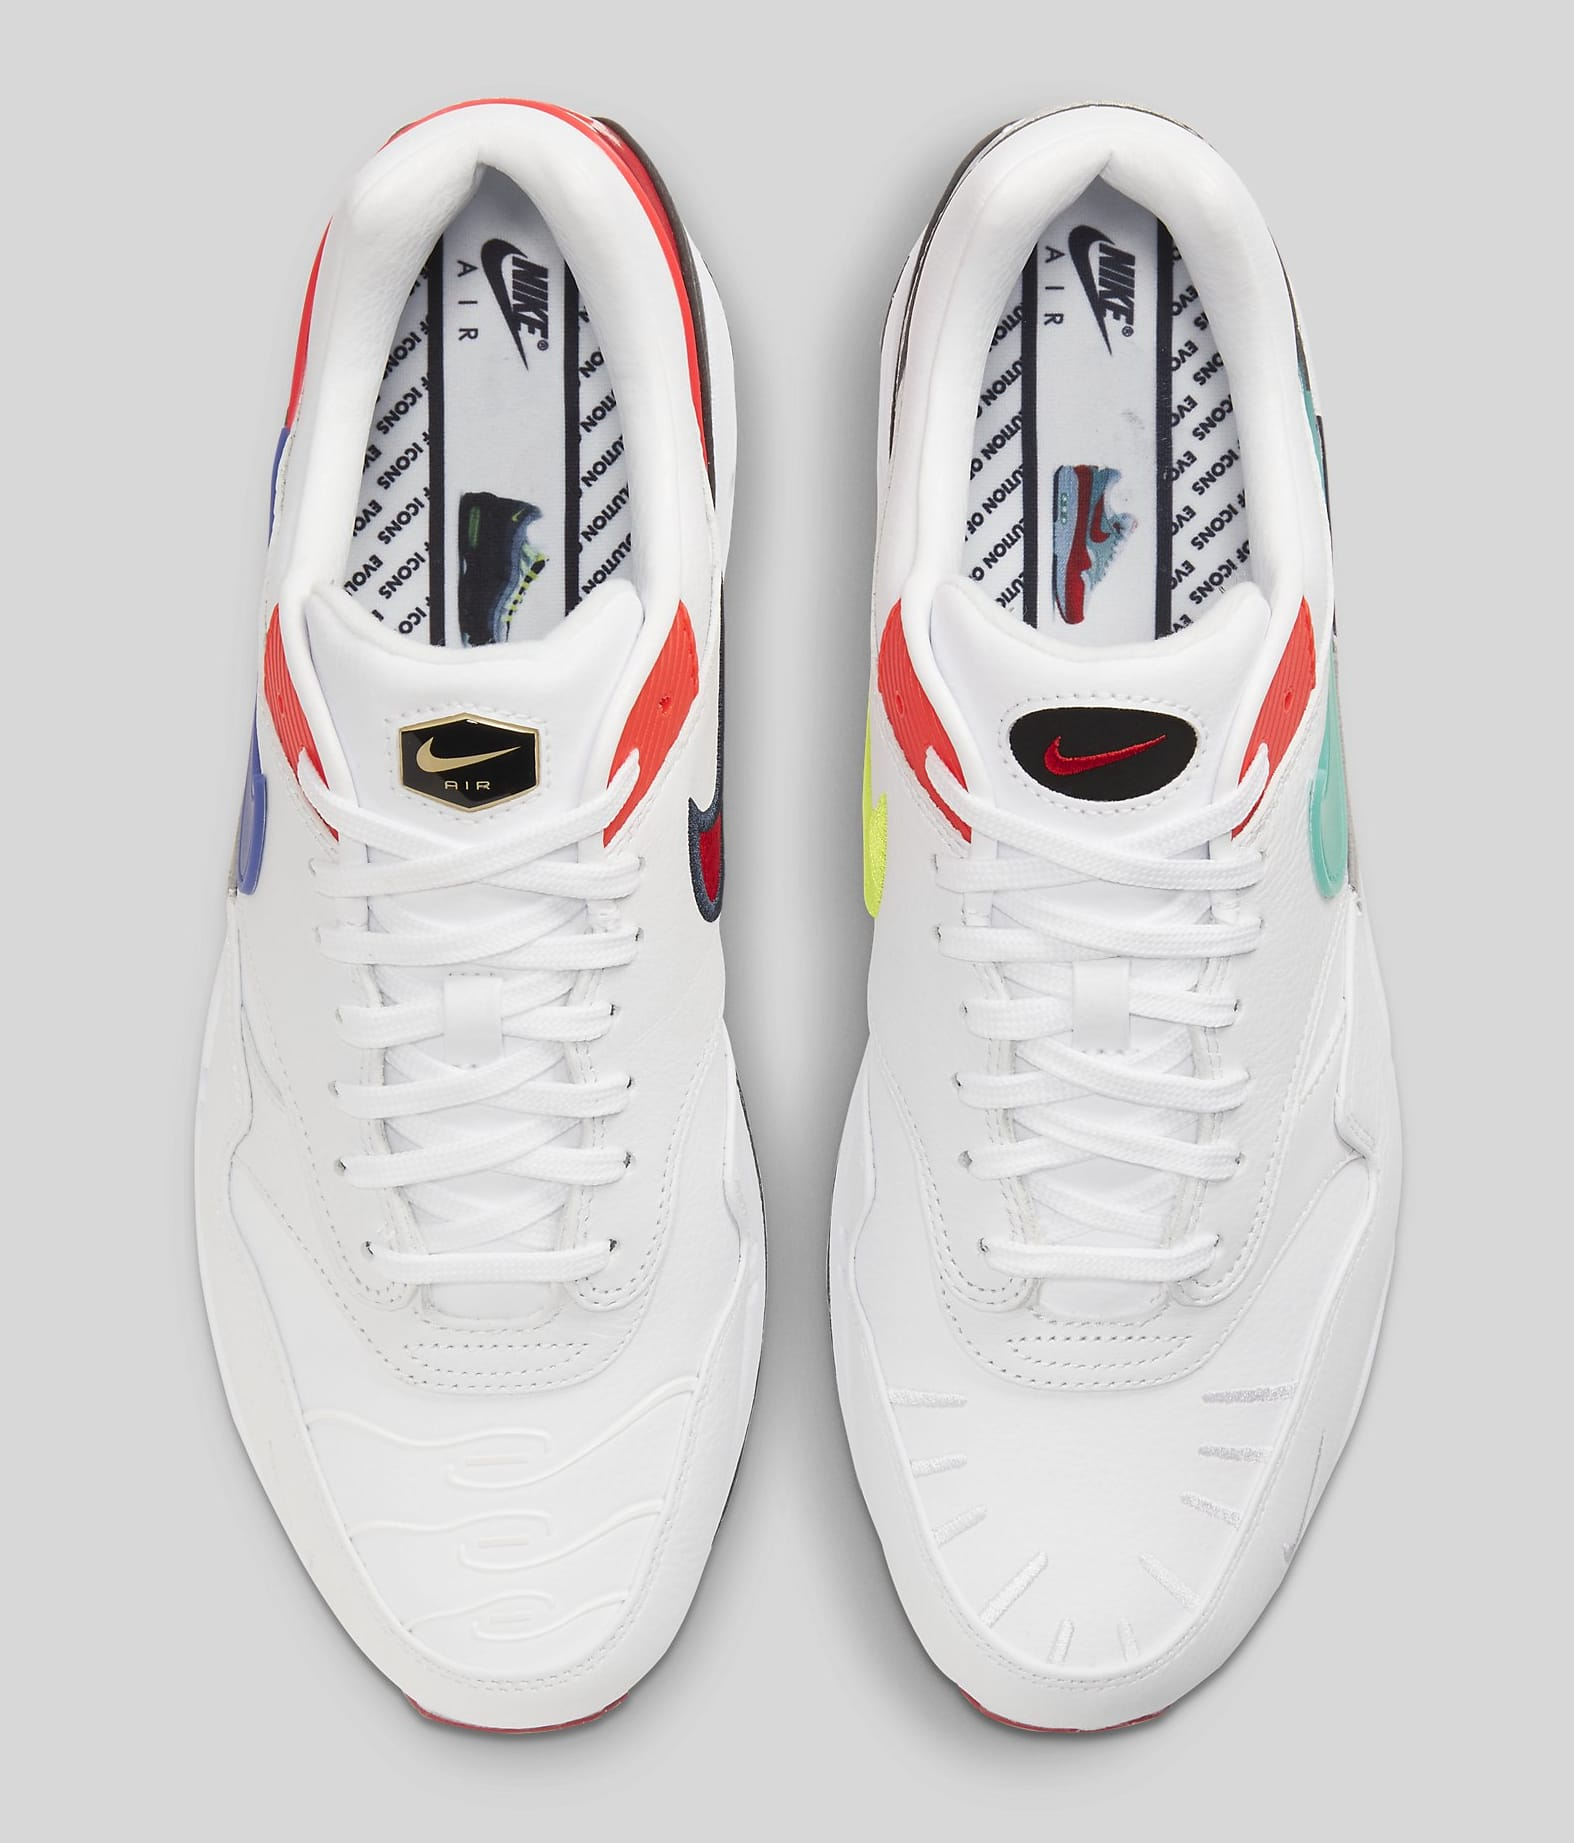 Nike Air Max 1 'Evolutions of Icons' CW6541-100 Top